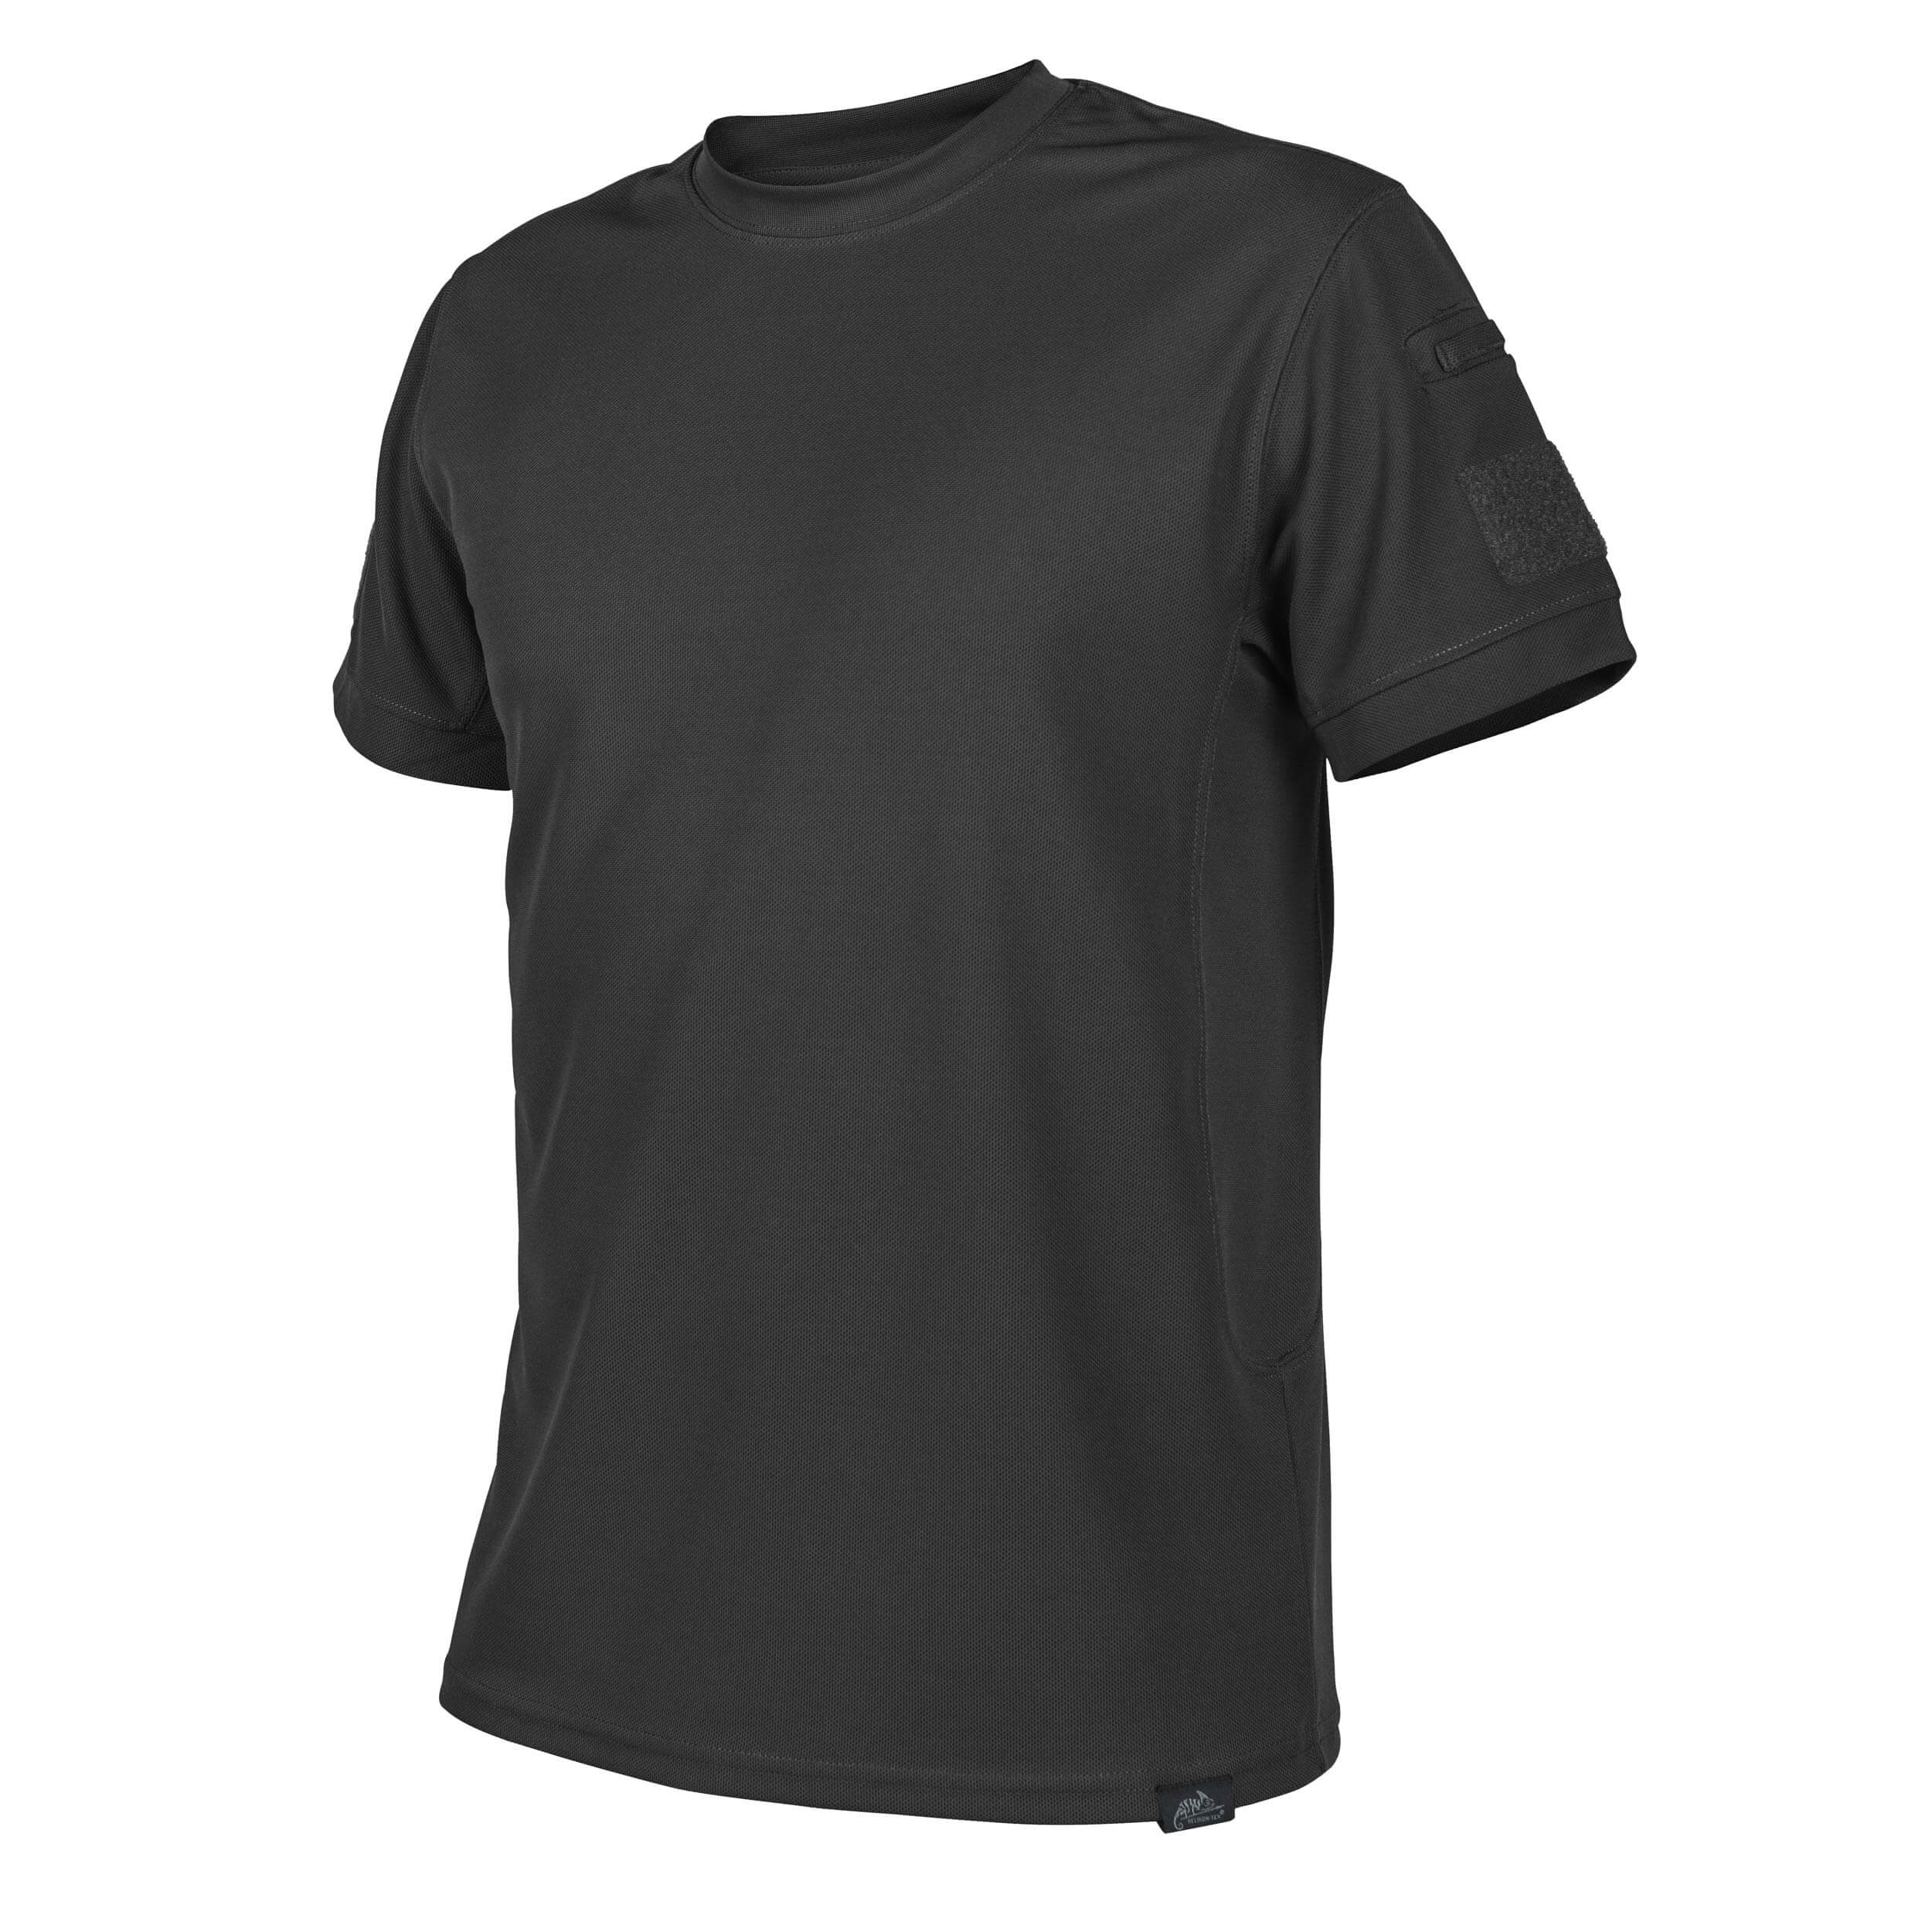 Helikon-Tex Tactical T-Shirt -Top Cool- Schwarz